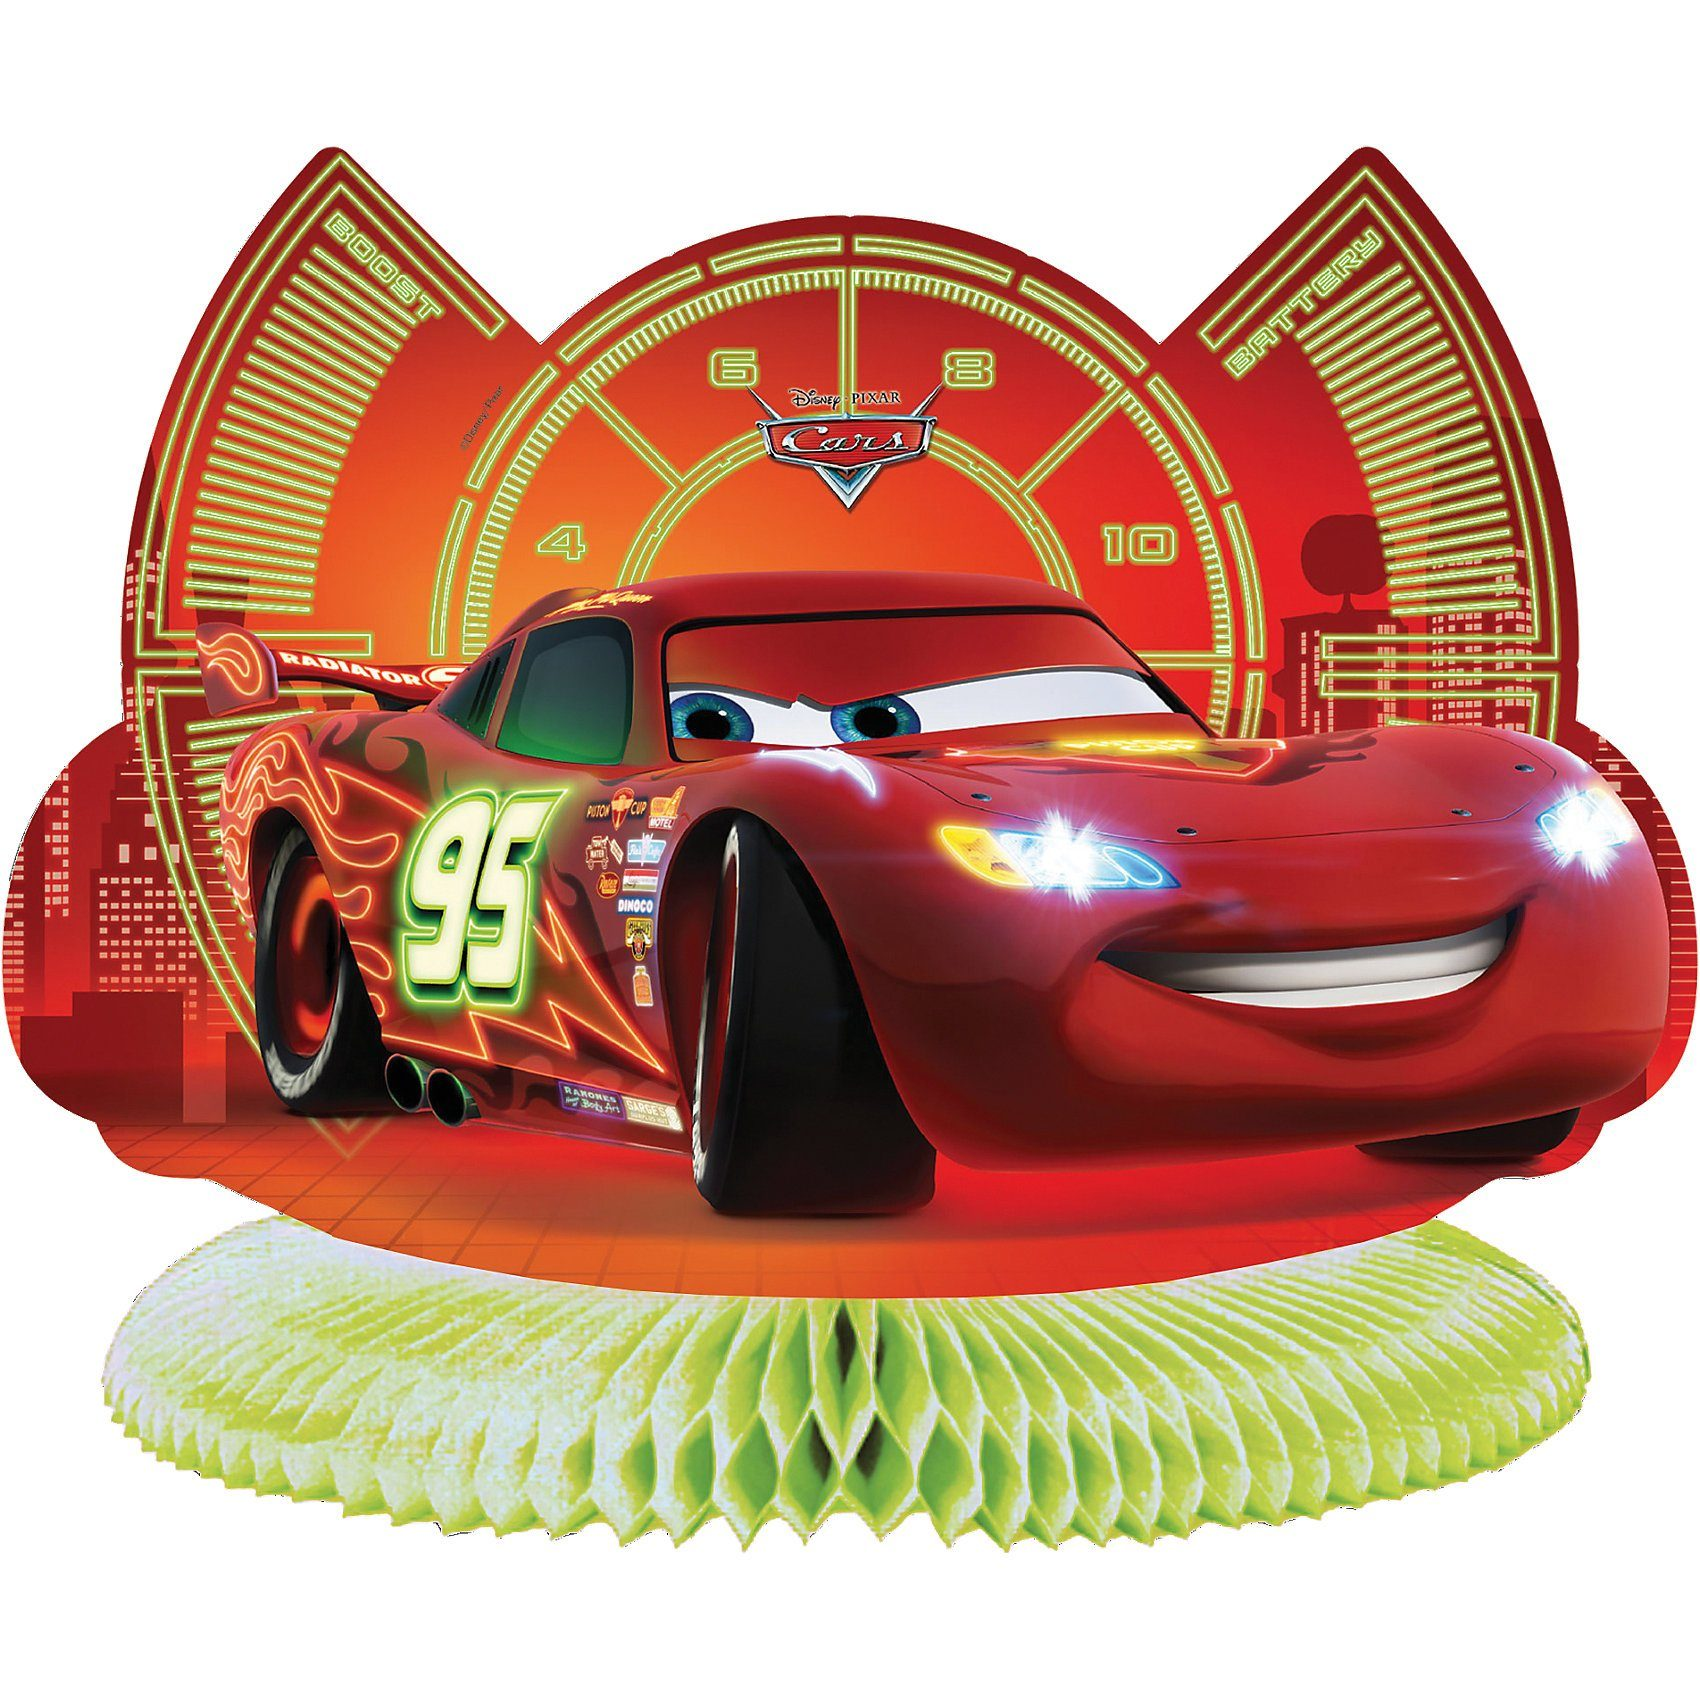 Procos Tischdekoration Disney Cars